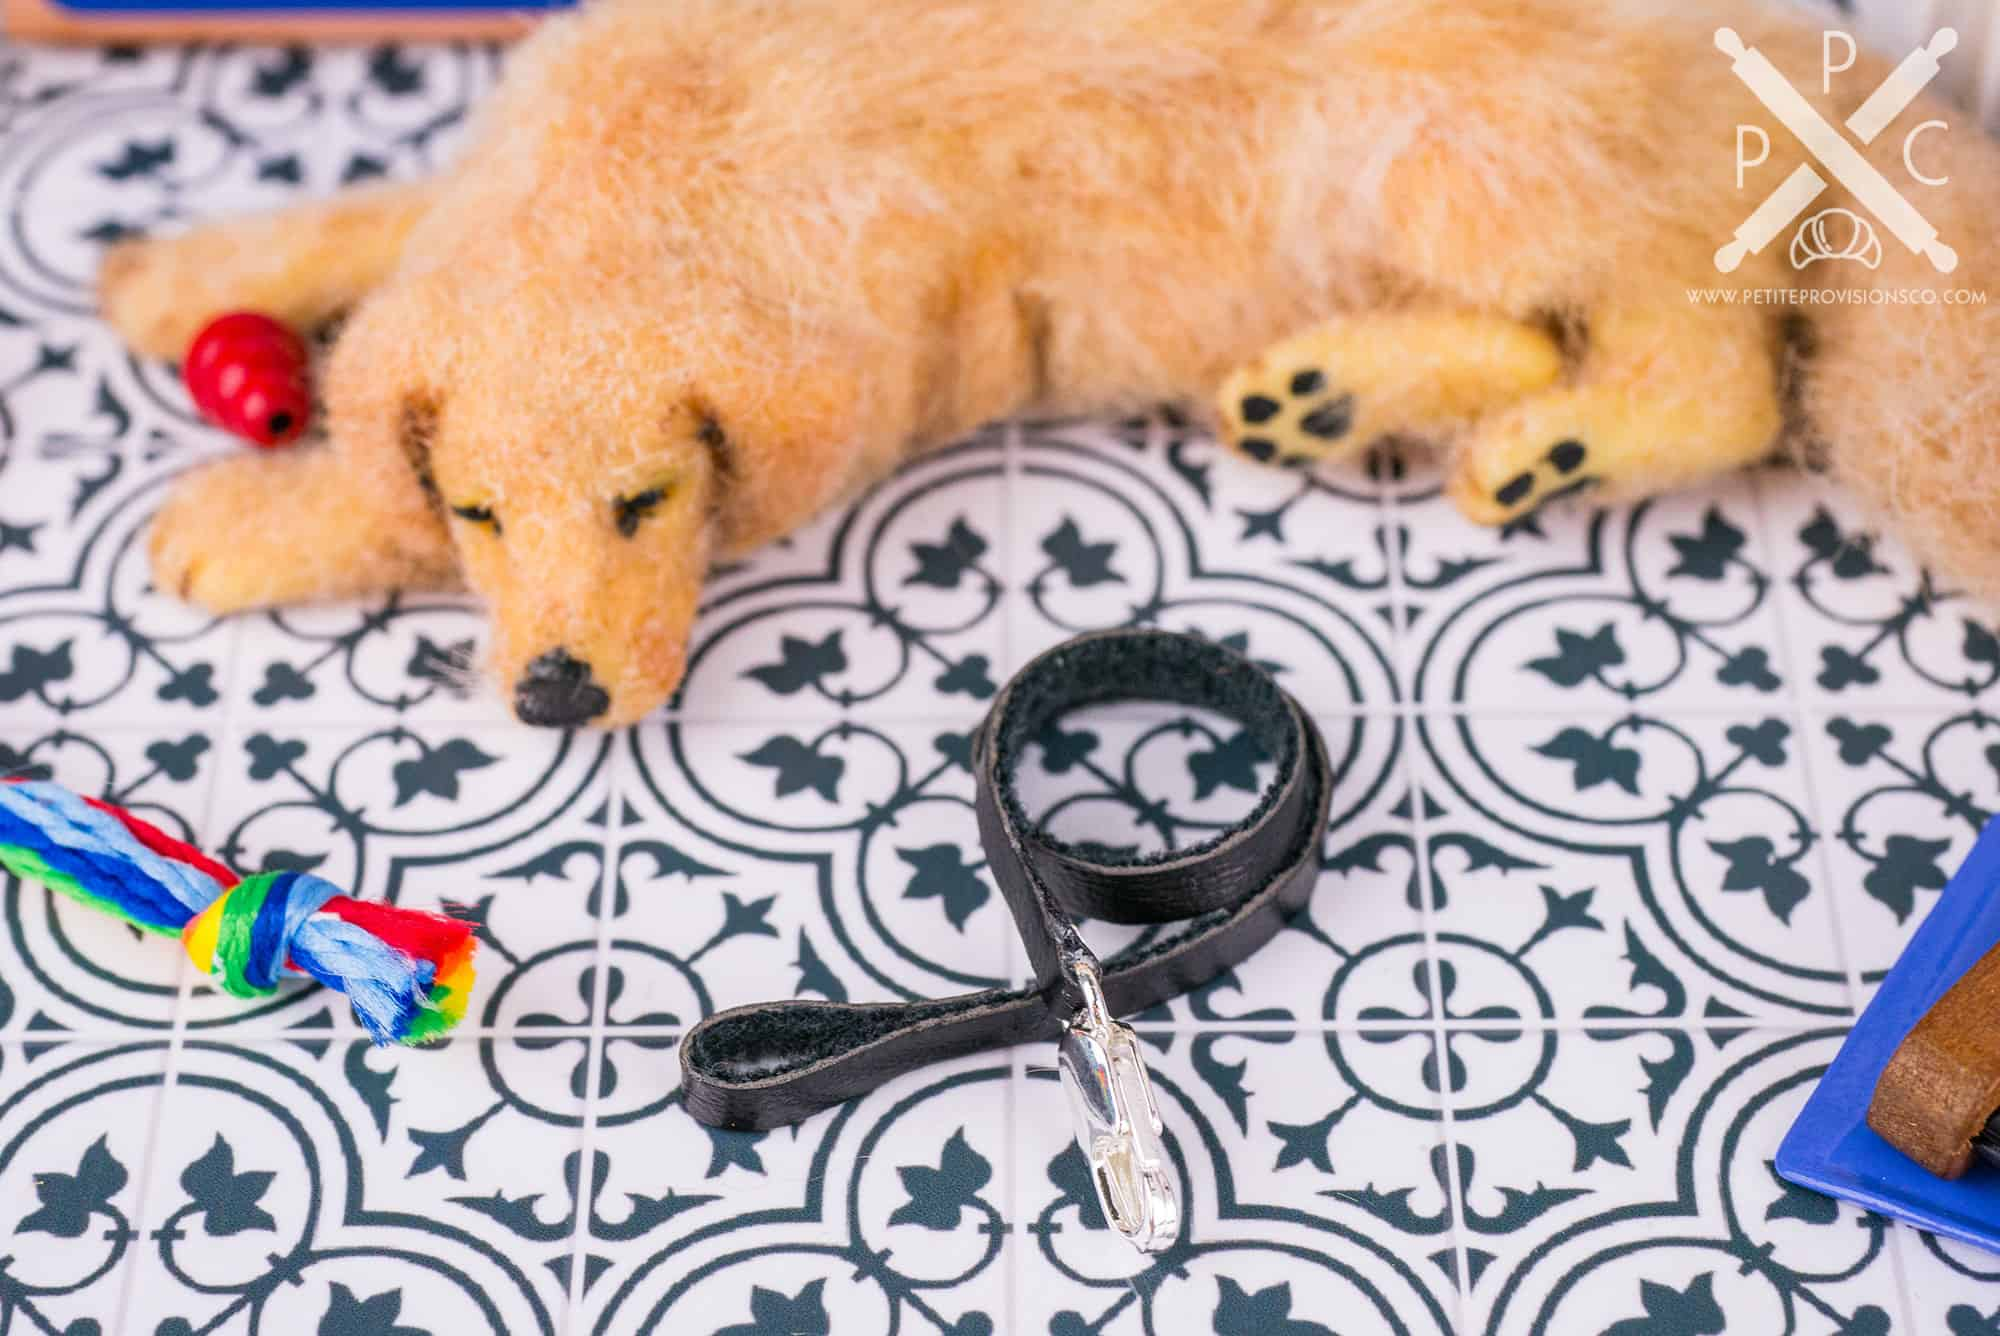 Handmade dollhouse miniature leather dog leash with a sleeping dog in a one inch scale scene by Erika Pitera, The Petite Provisions Co.